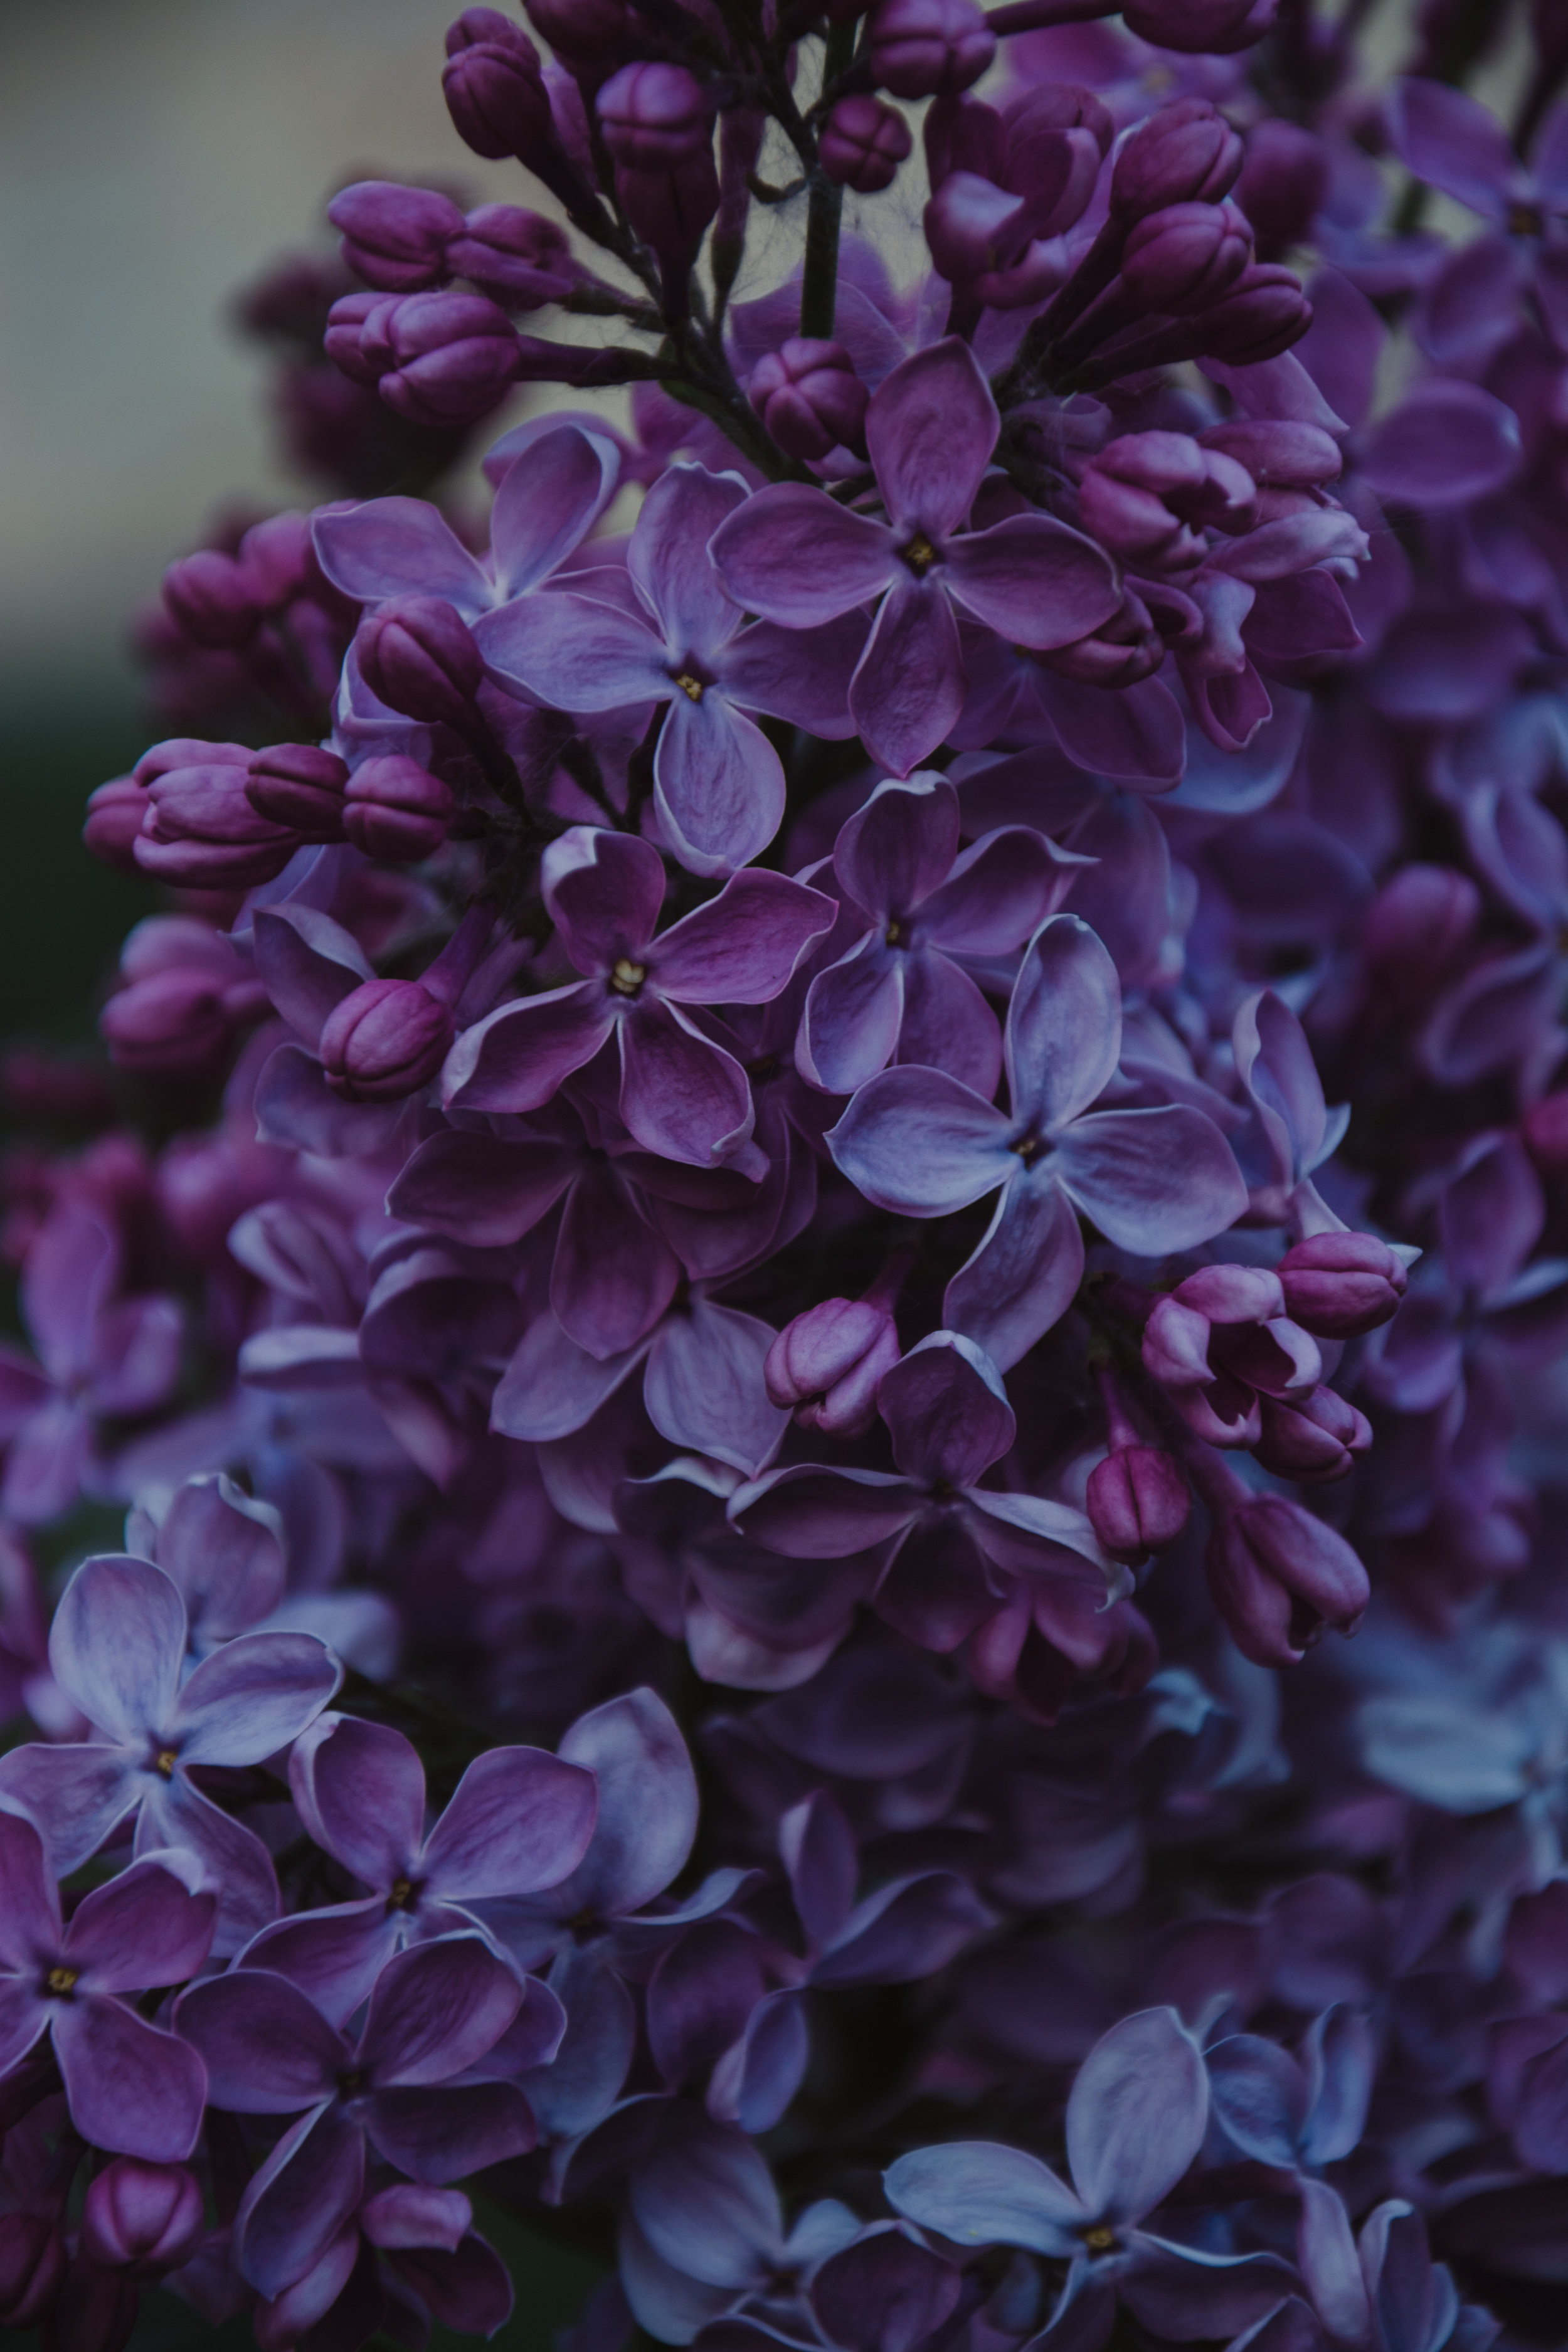 Lilac is a flowering plant that you can plant in your backyard in bear country.